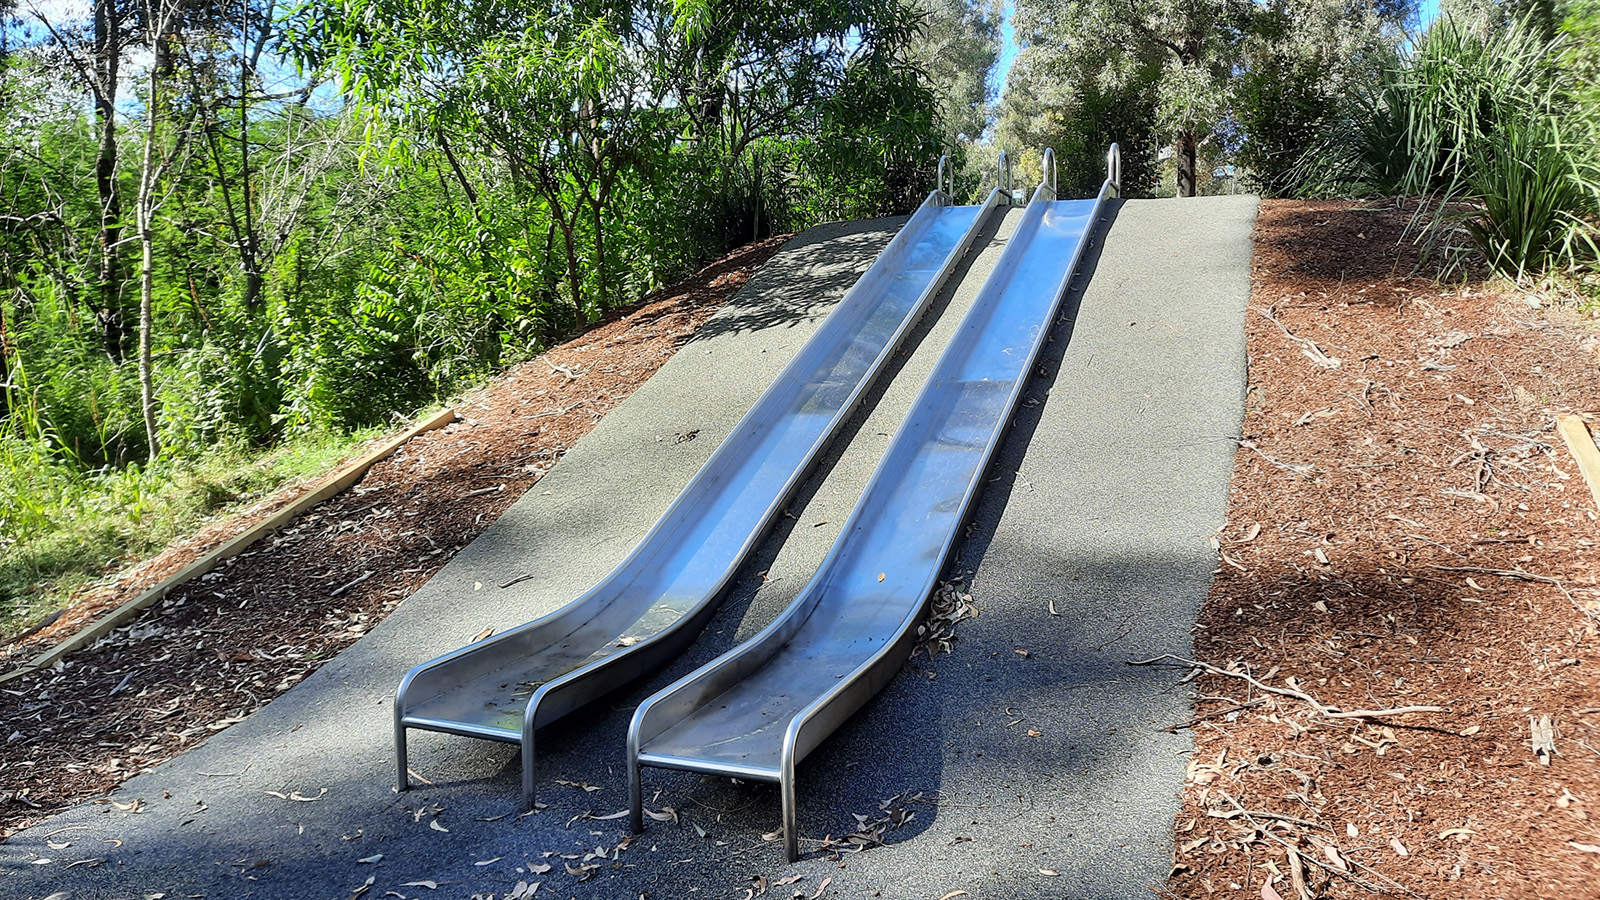 Two outdoor slides on a hillside